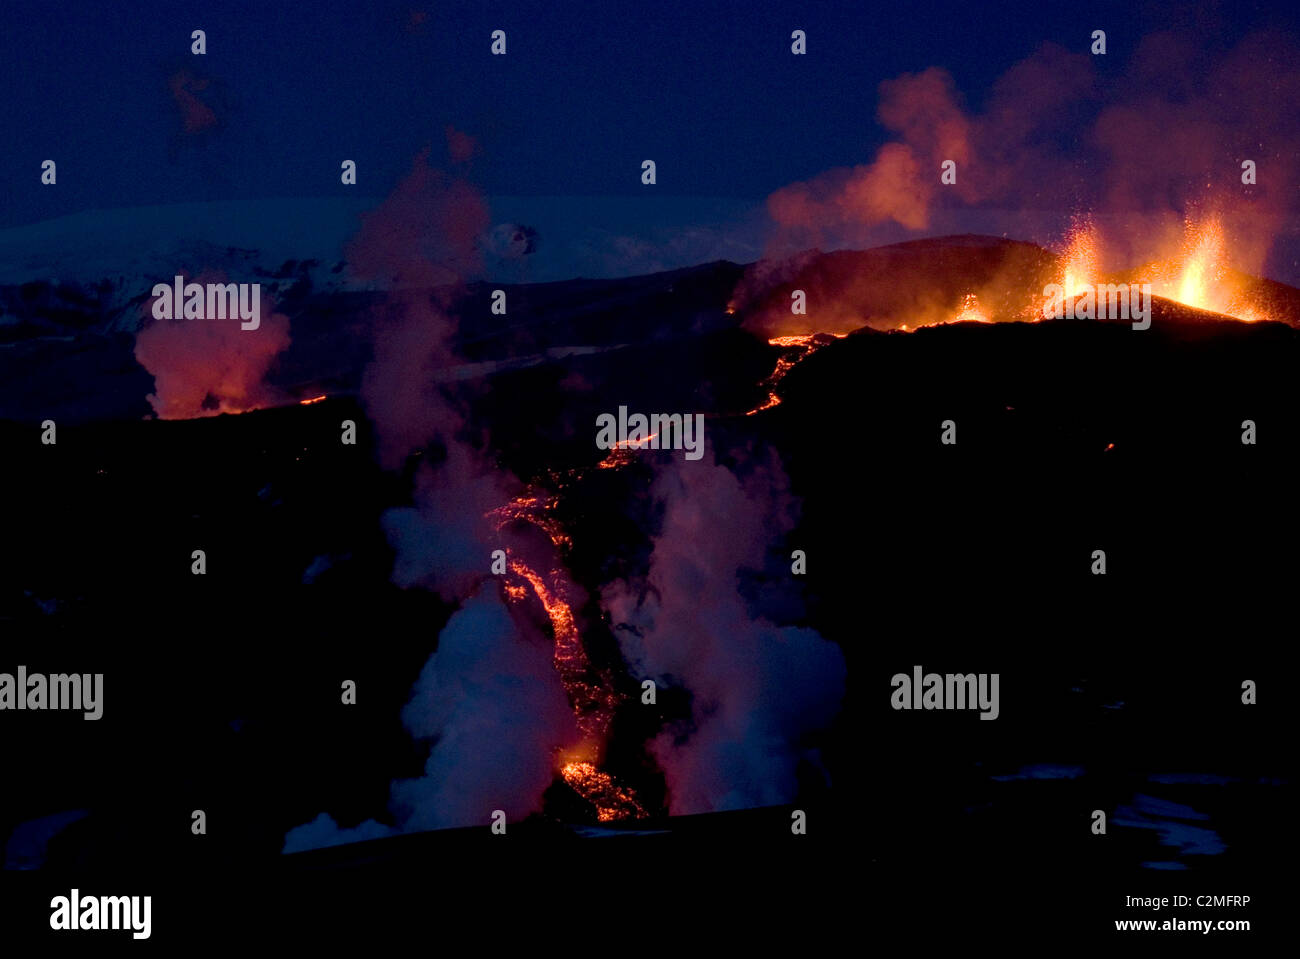 Fountaining lava and flow down mountain from Eyjafjallajokull, Southern Iceland - Stock Image